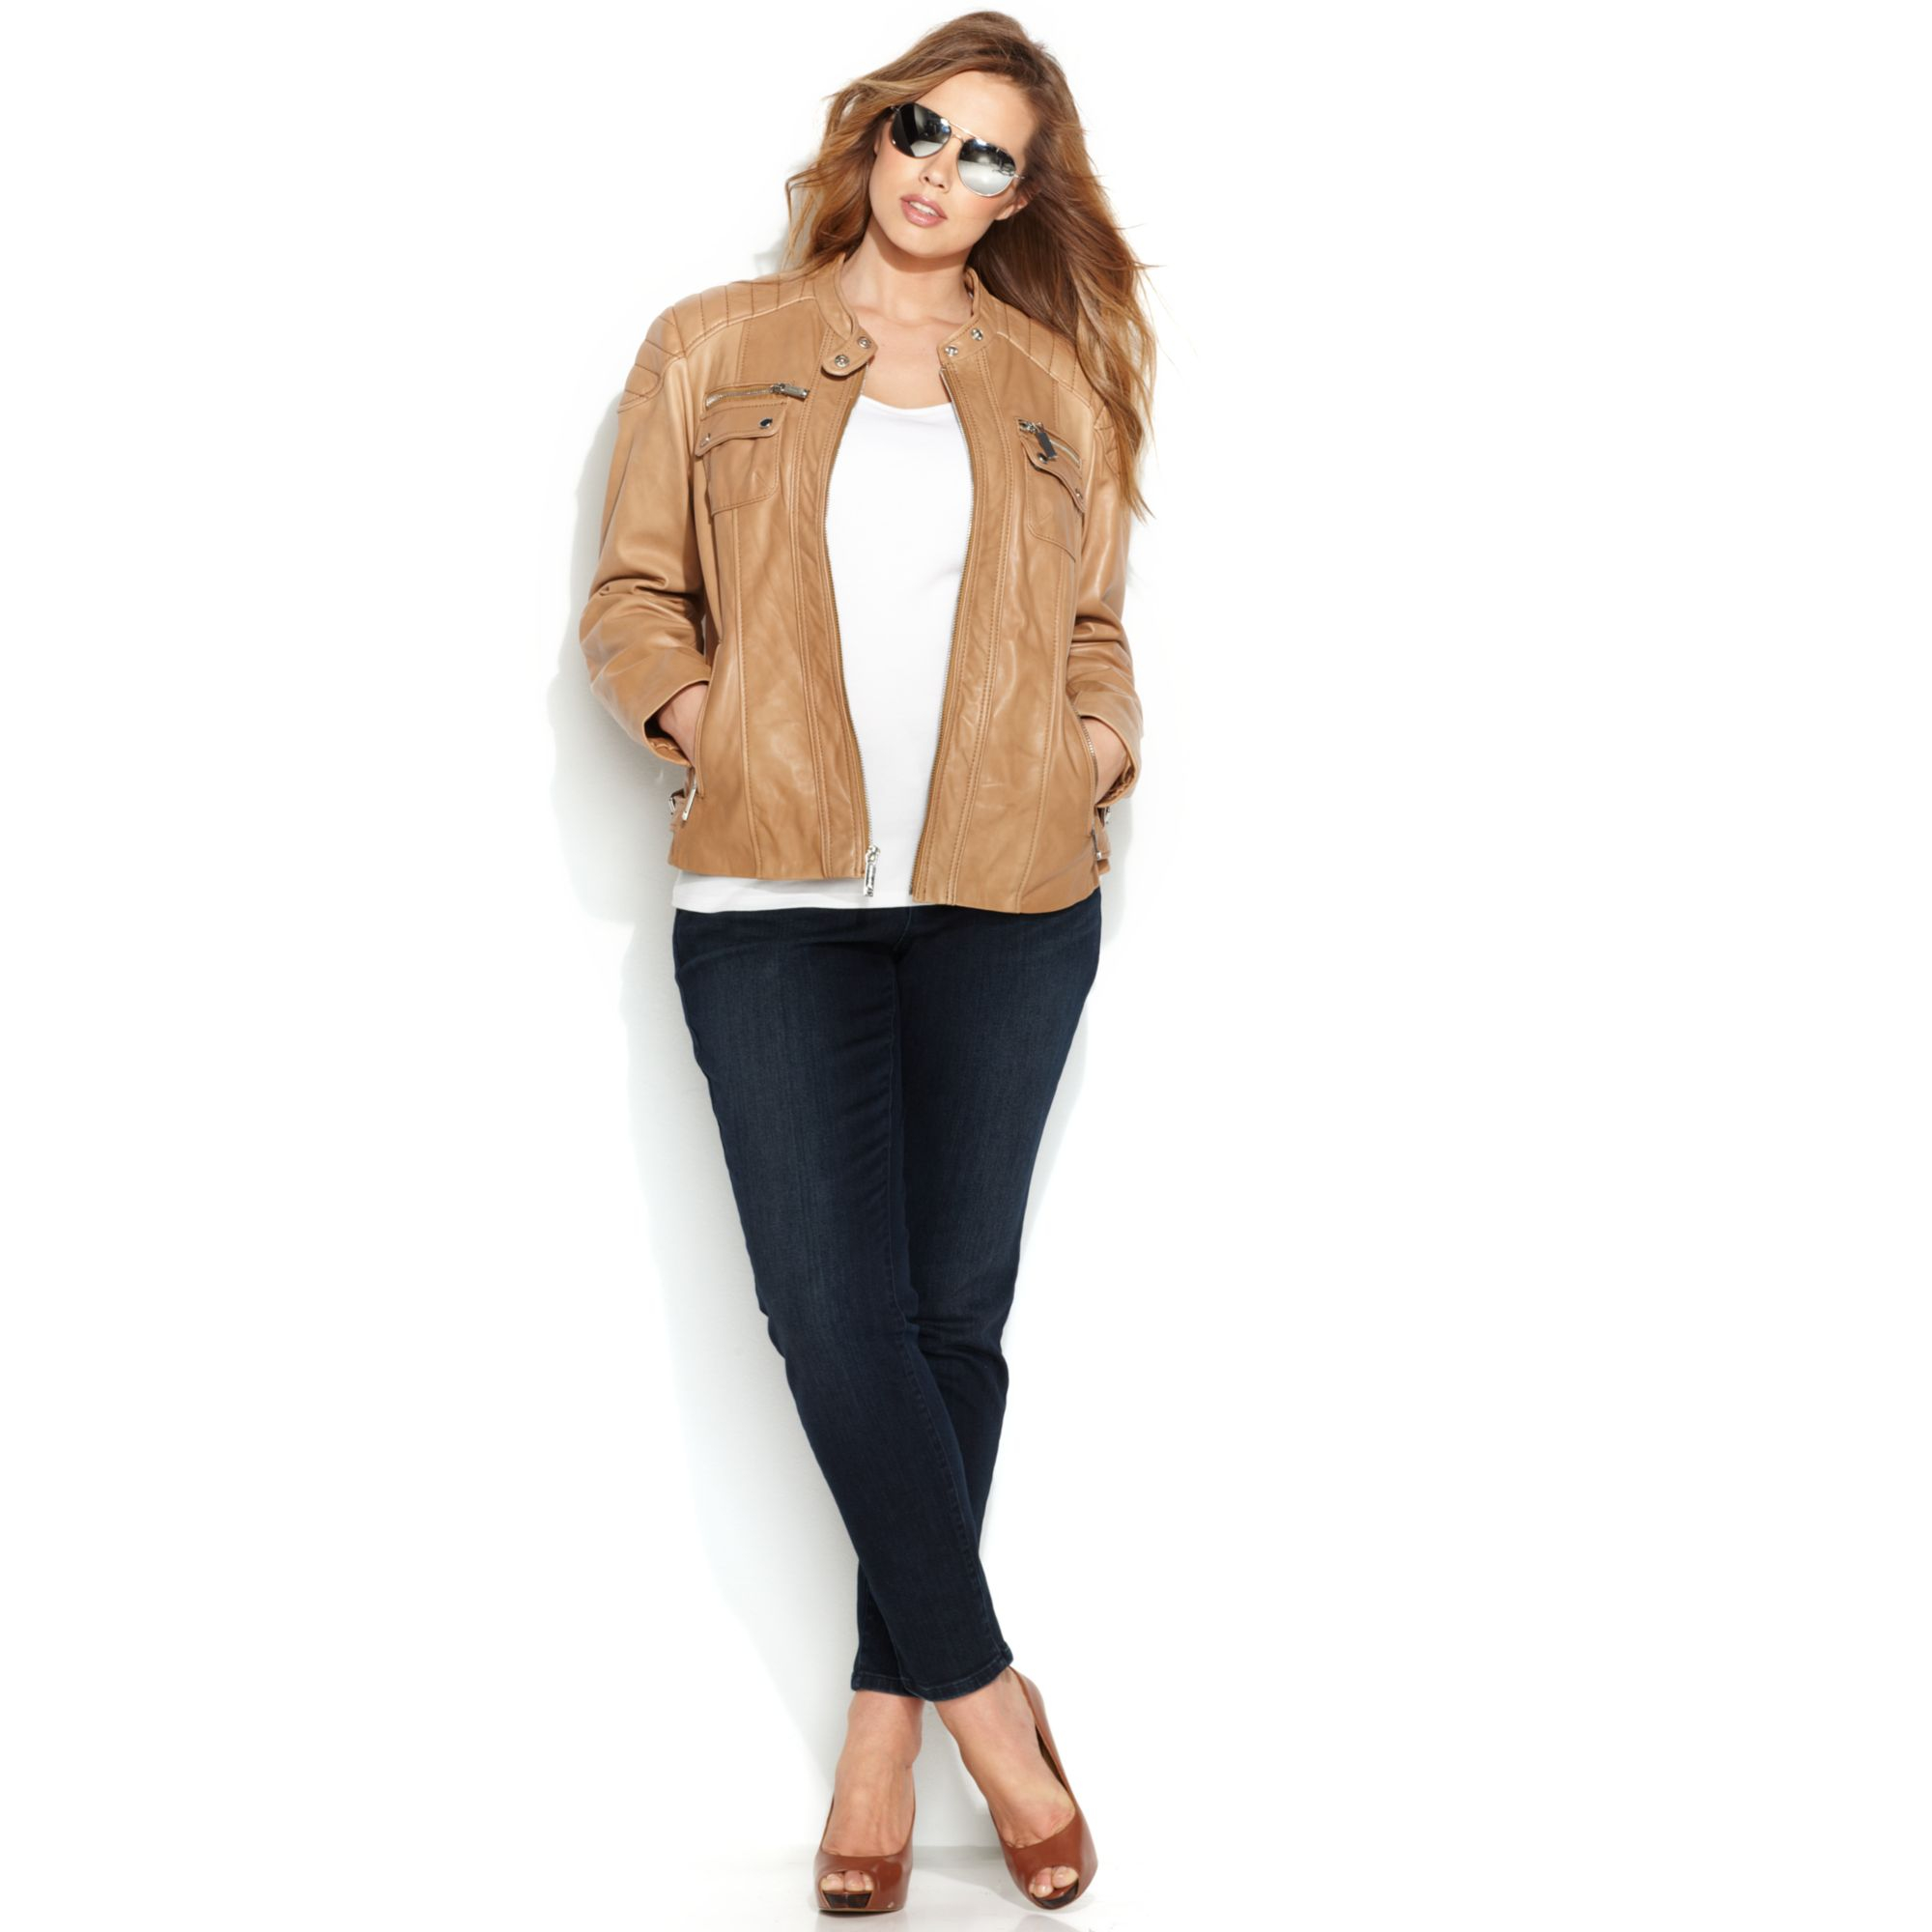 6347152302e8f Lyst - Michael Kors Plus Size Leather Moto Jacket in Brown